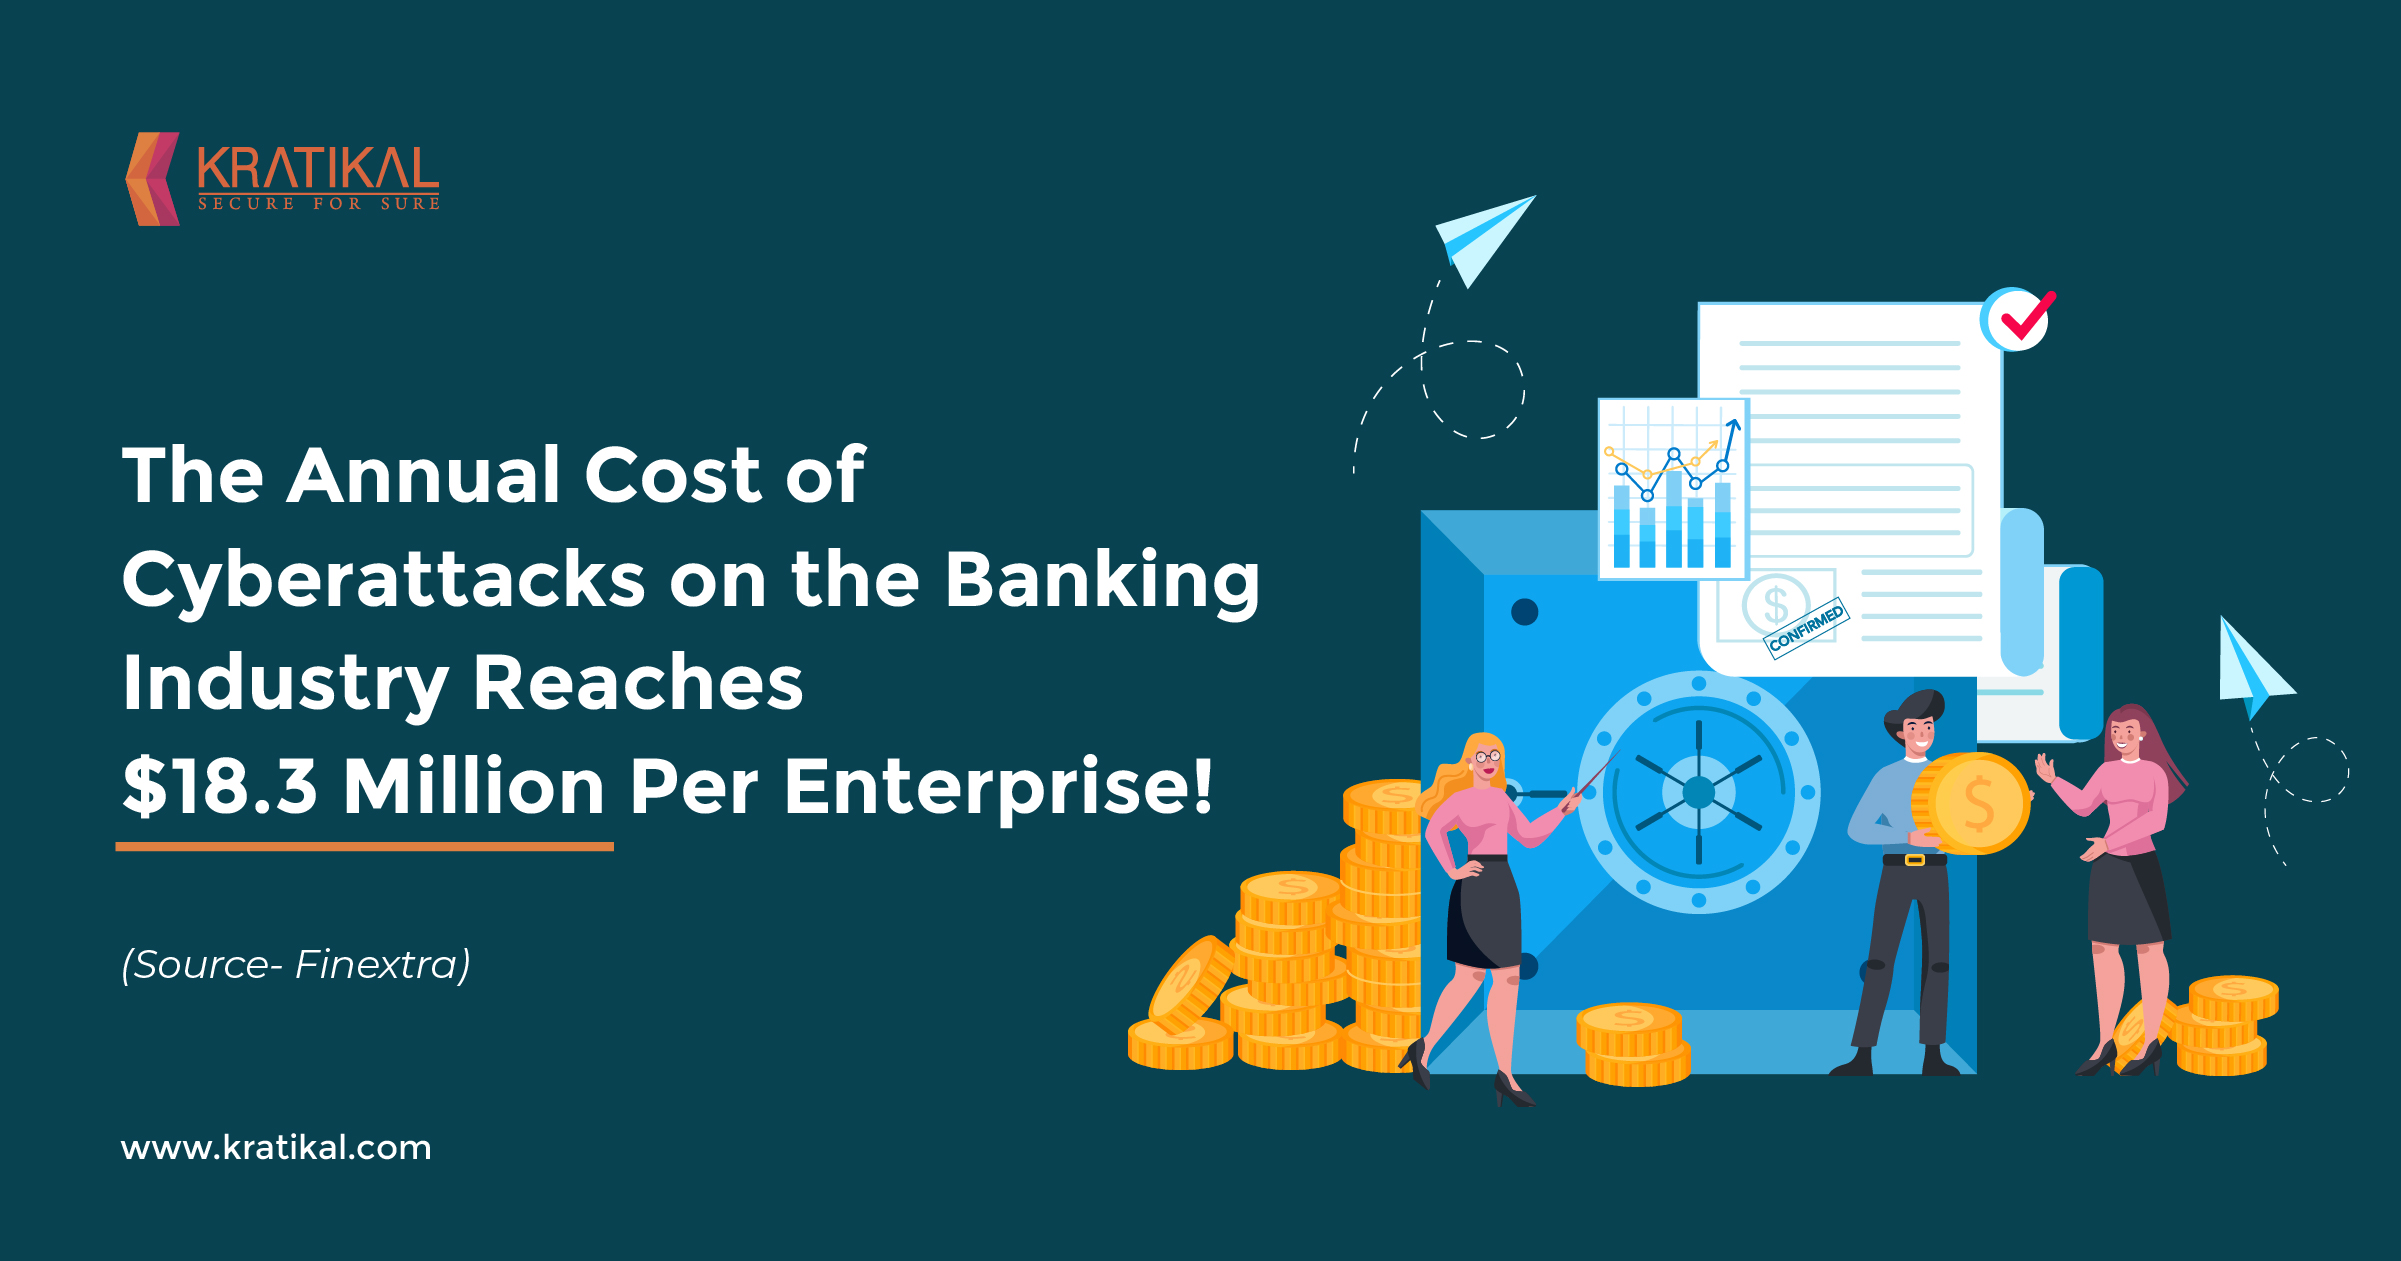 The Annual Cost of Cyberattacks on the Banking Industry Reaches $18.3 Million Per Enterprise! (1)